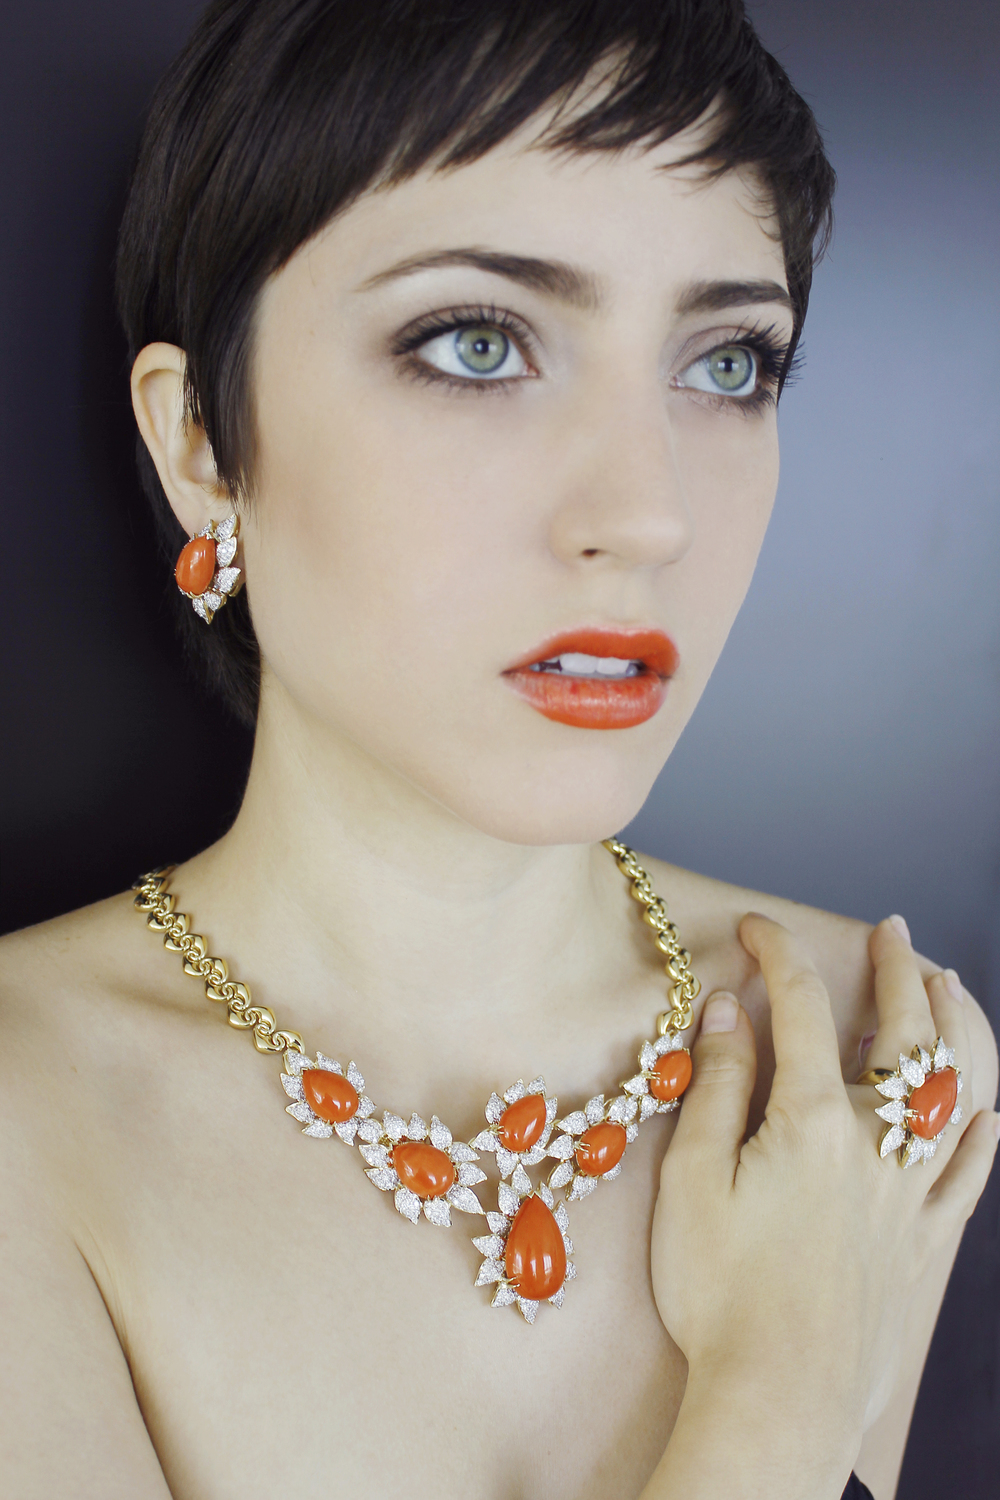 18 karat gold earring, ring, and necklace set with high quality coral